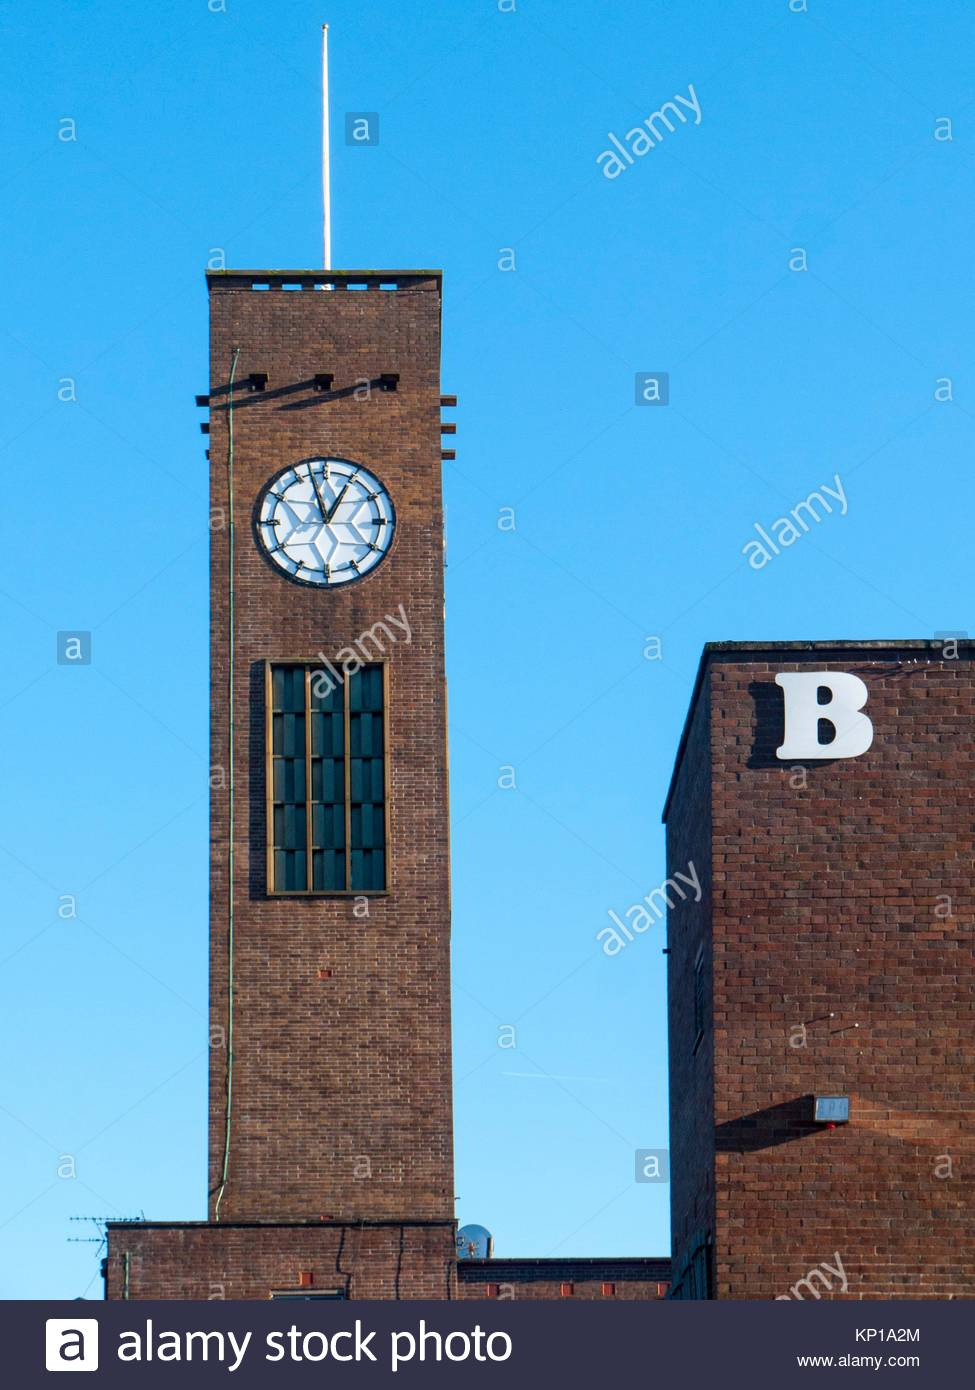 Clock tower with B from closed down bed store in Crewe, Cheshire, England, UK - Stock Image